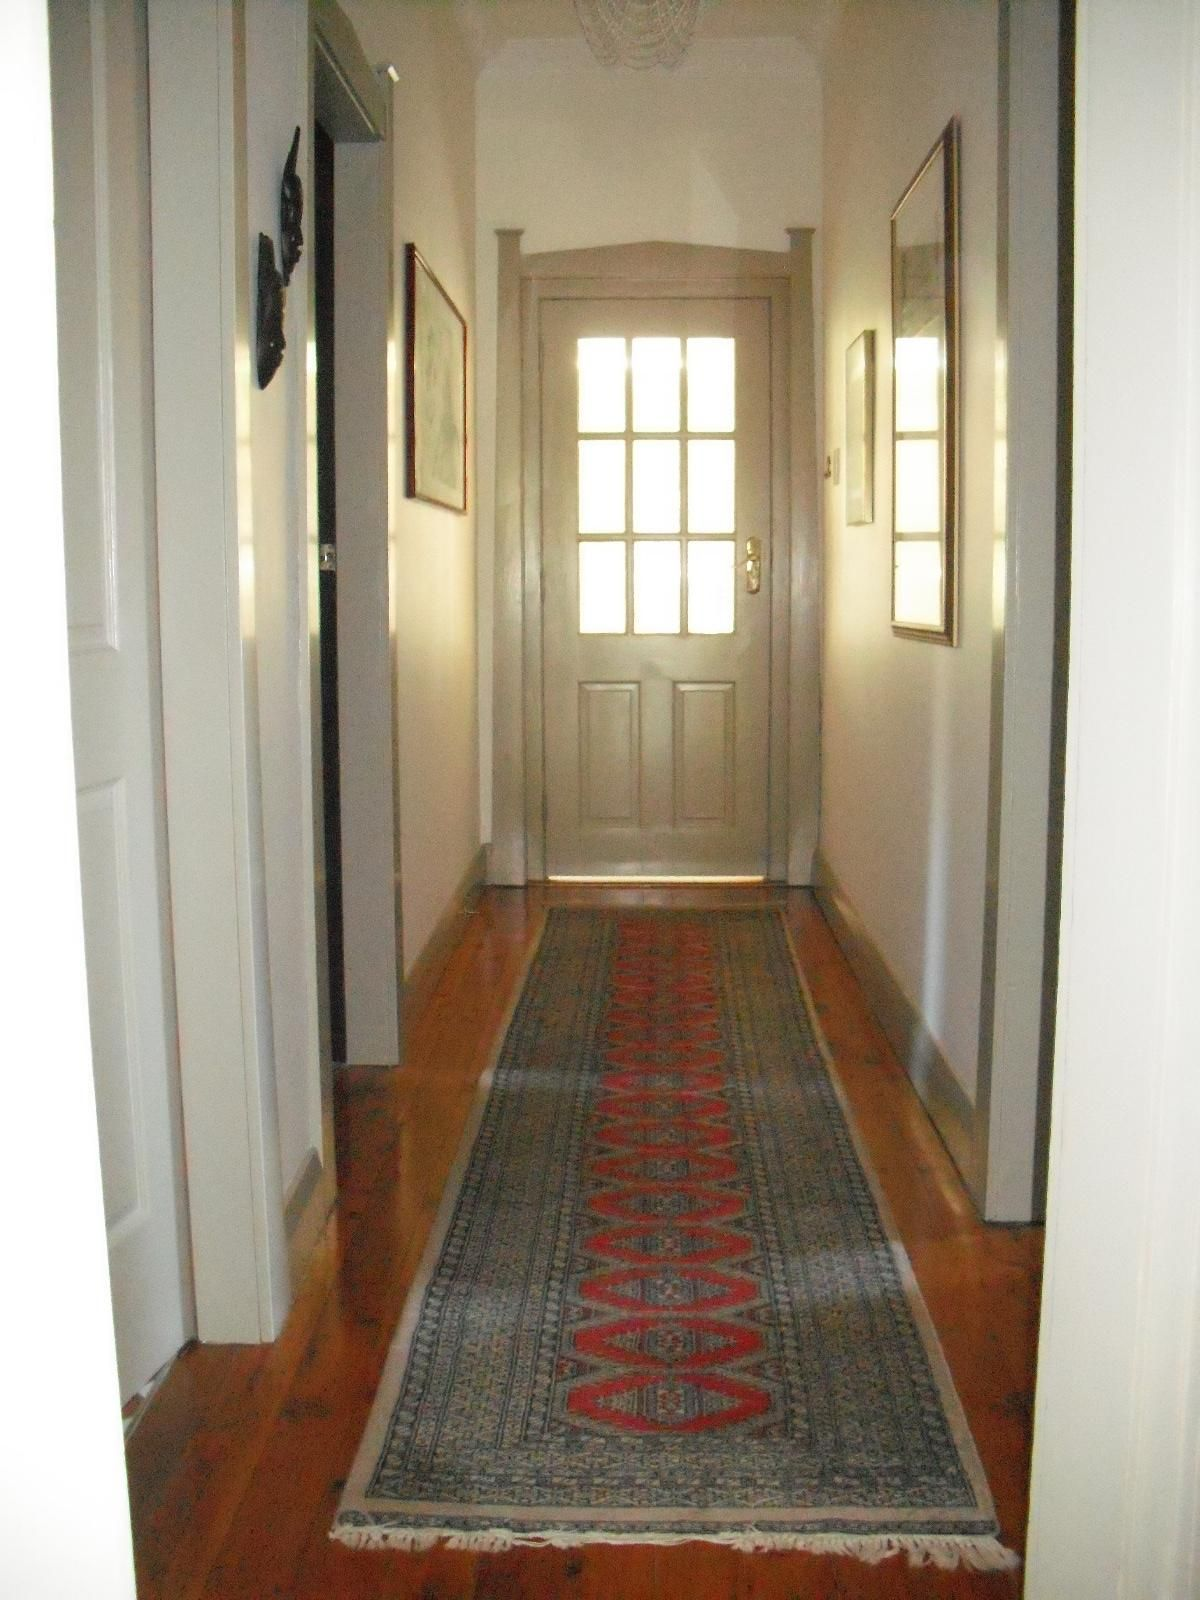 Entrancing Hallway Ideas for Your Decor and Interior Design